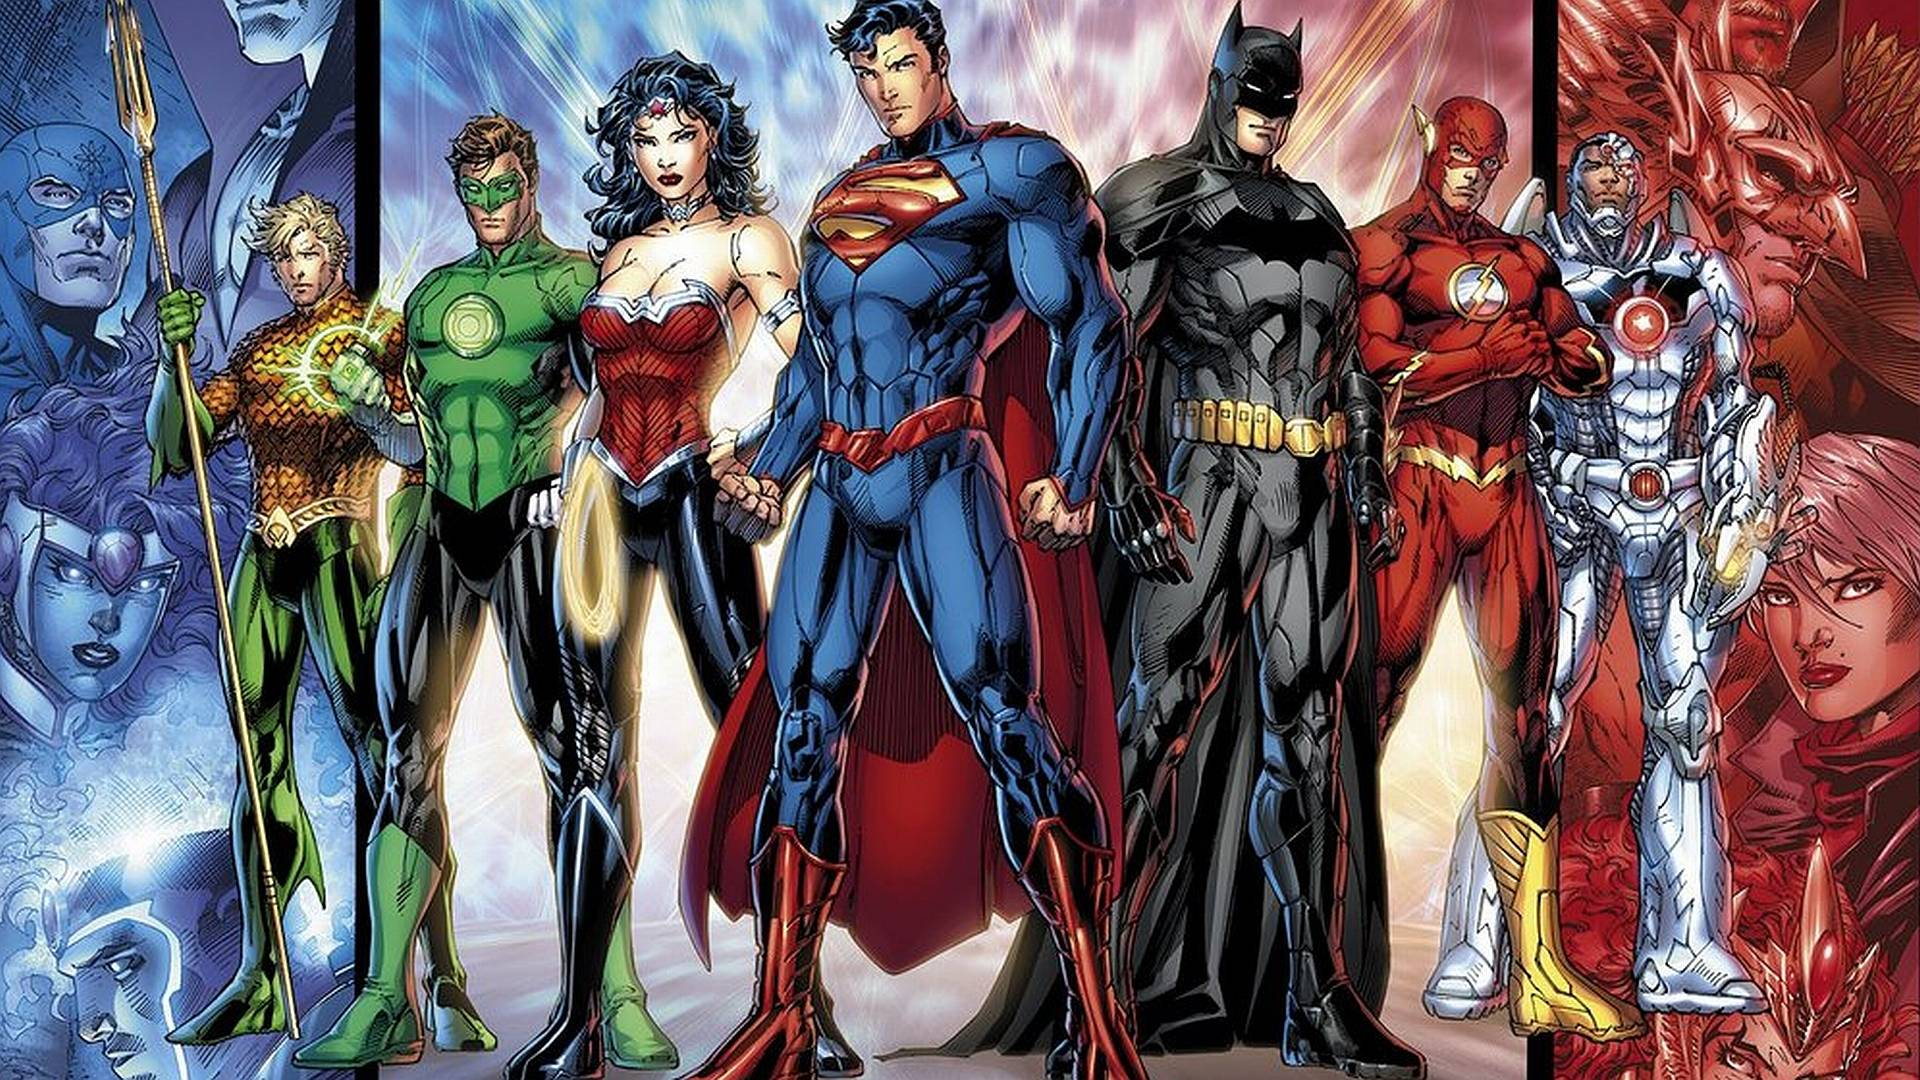 Hd wallpaper justice league - Justice League Wallpapers Hd Wallpapers Inn